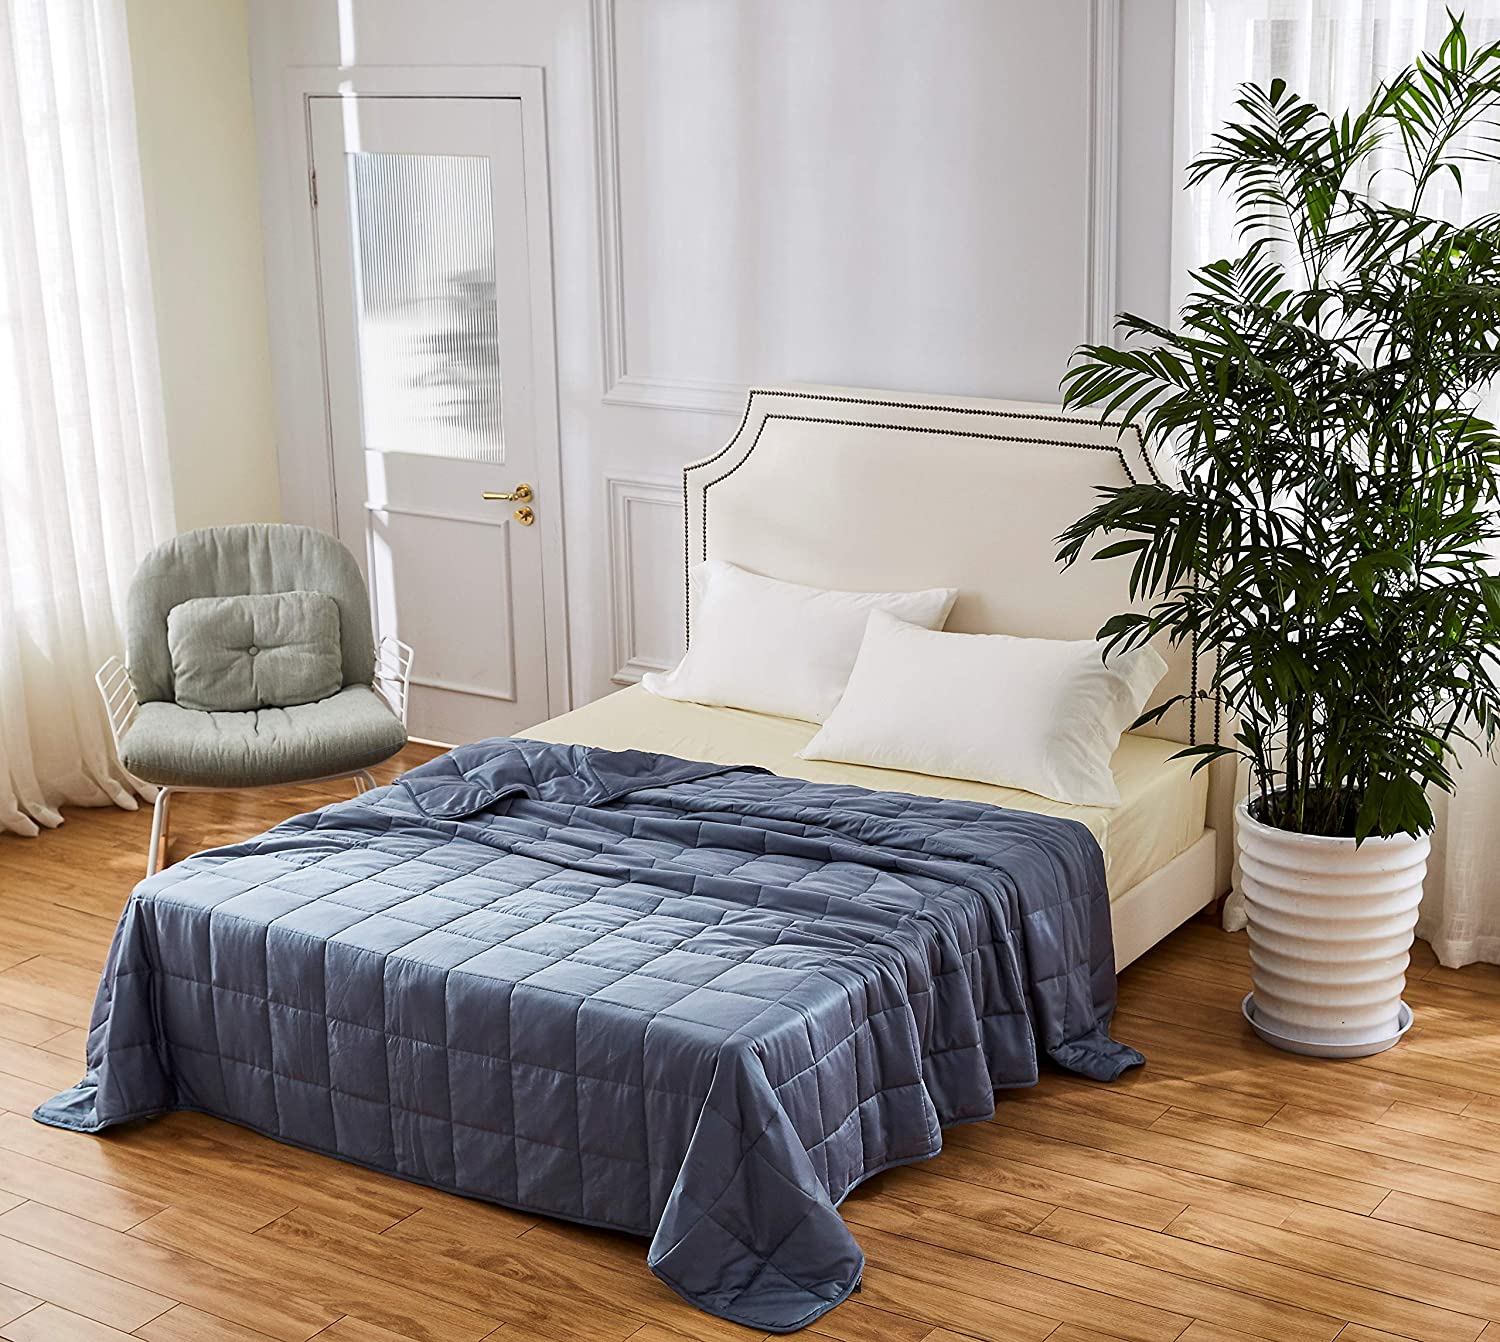 King Size Cooling Bamboo Weighted Blanket - 20lbs 88x104 - The Only True King Size Bamboo Cooling Weighted Comforter On The Market - Perfect for Couples